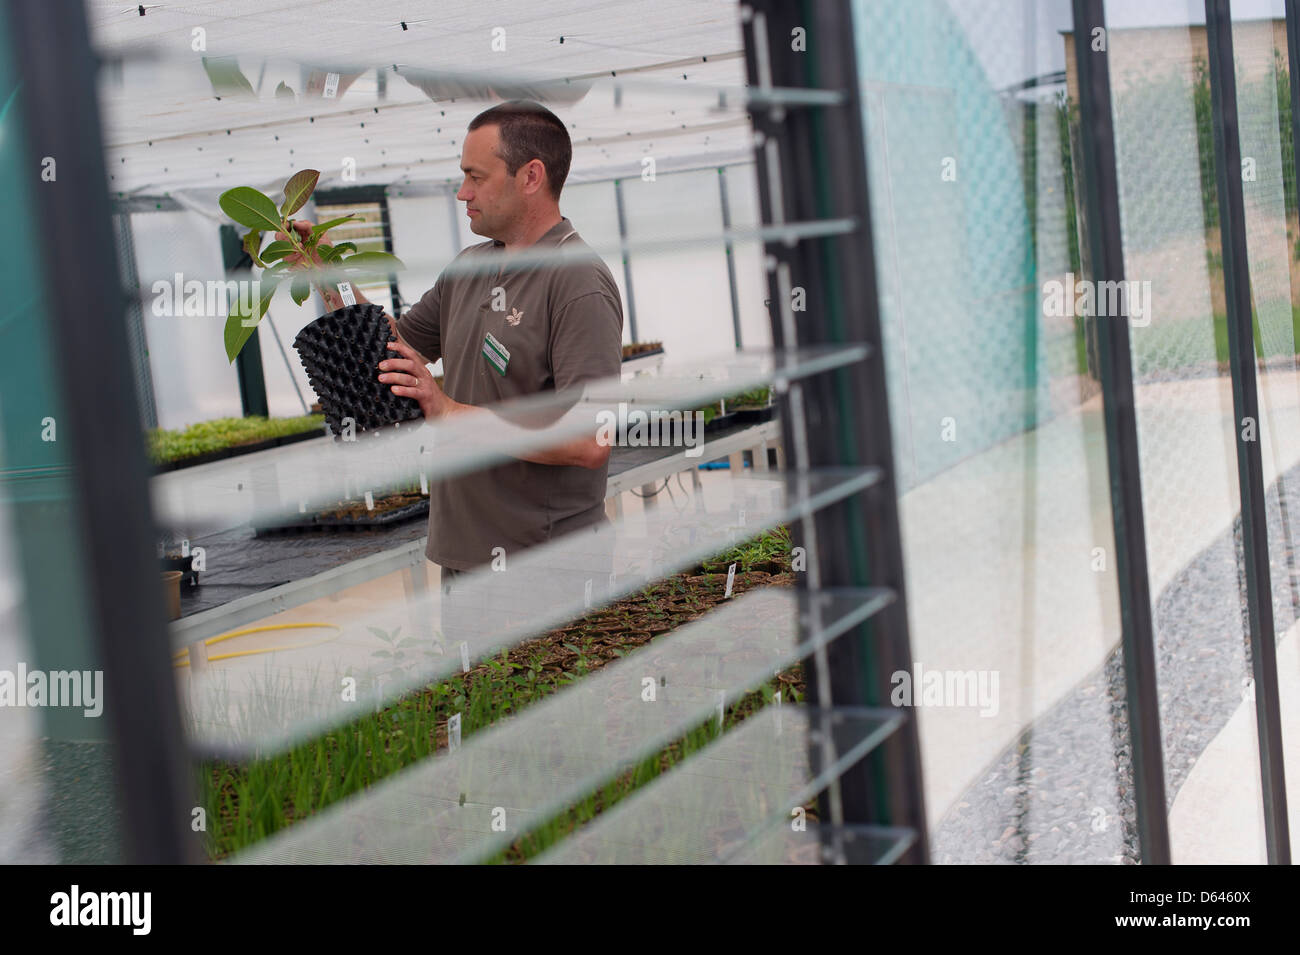 A gardener checking a plant in a nursery greenhouse - Stock Image